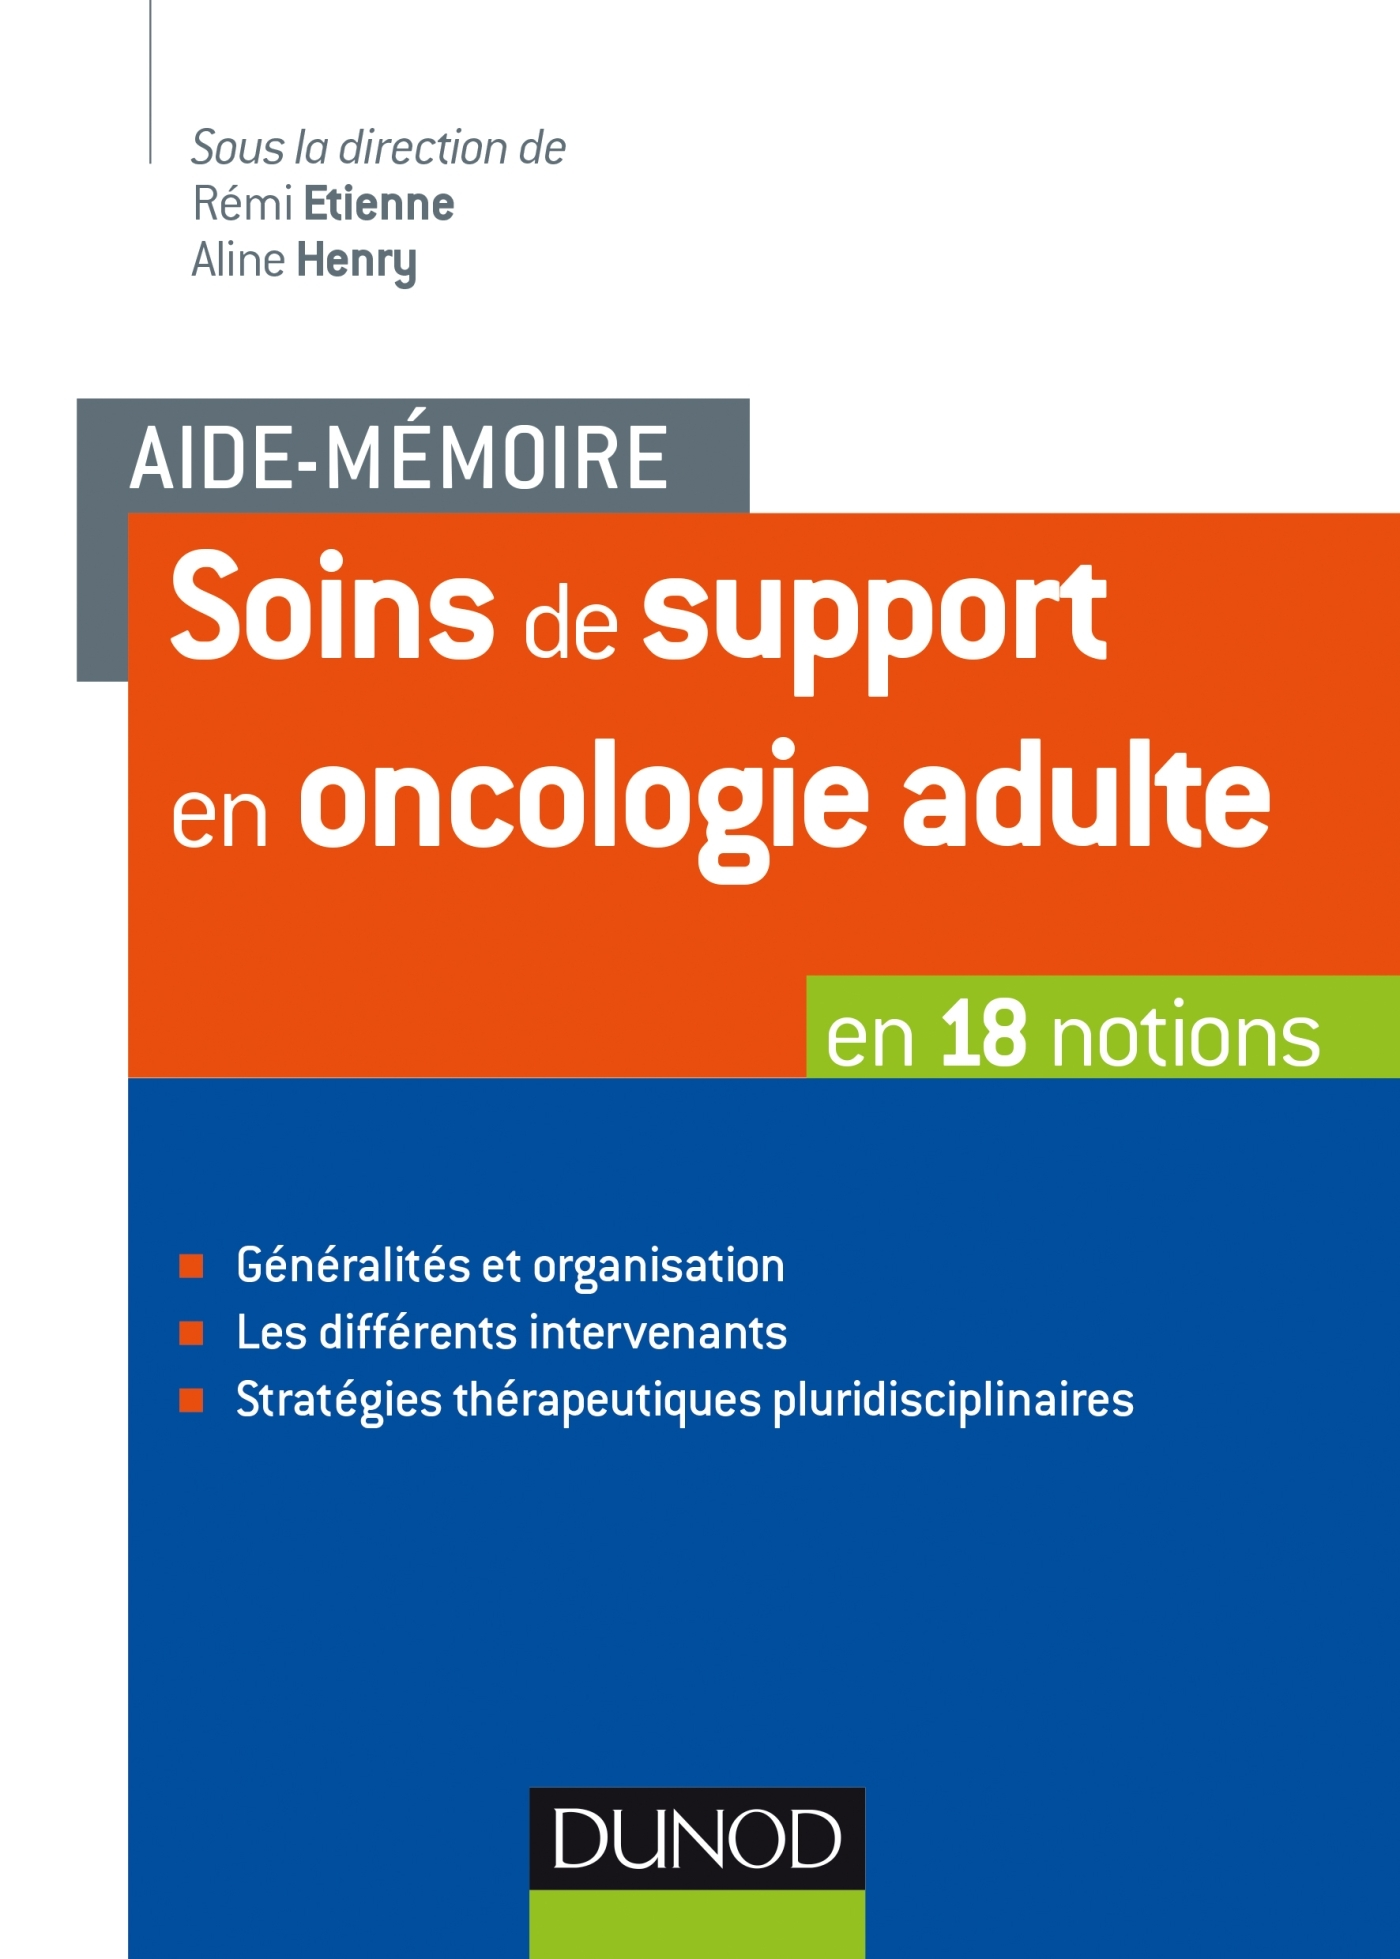 AIDE-MEMOIRE - SOINS DE SUPPORT EN ONCOLOGIE ADULTE - EN 18 NOTIONS